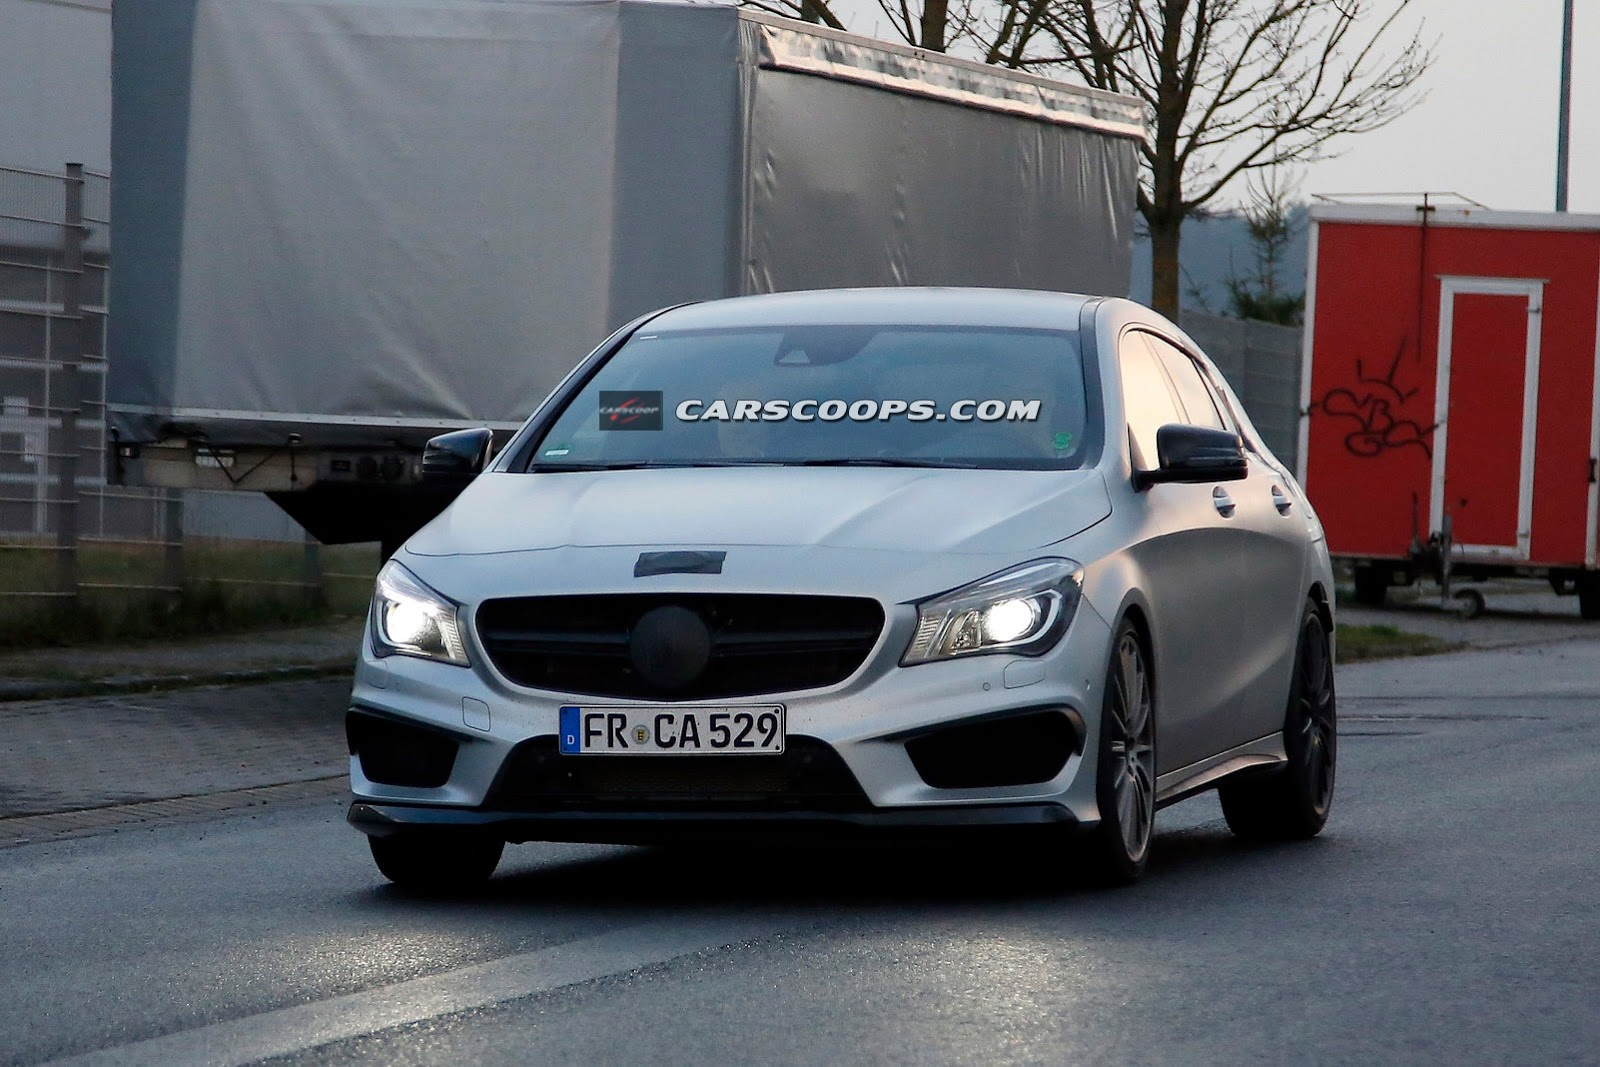 mercedes cla 45 amg shooting brake (1)